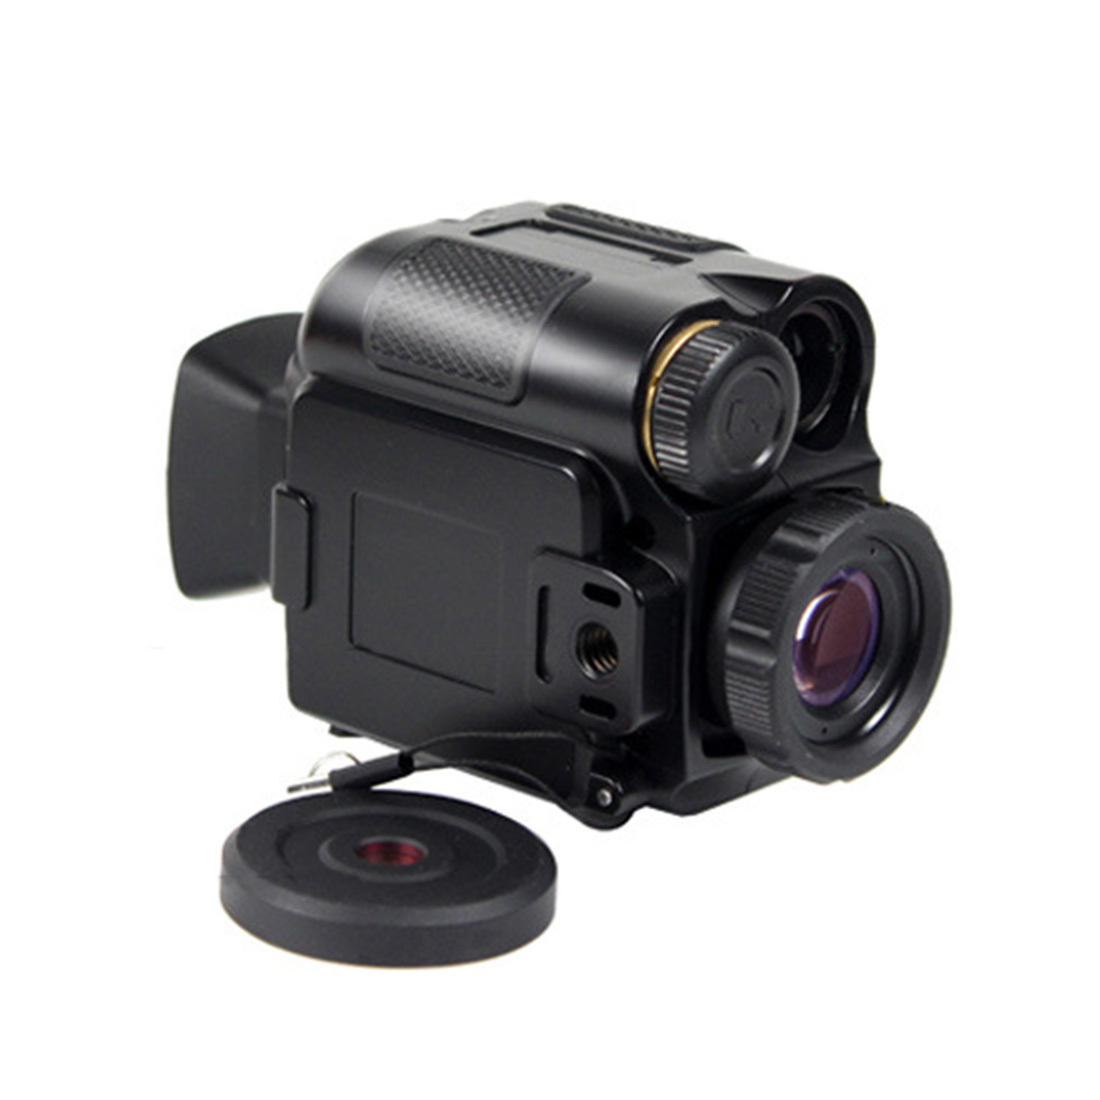 1-8 Times Electronic Zoom Focusing Night Vision Compact and Portable Night Vision Telescope - Black